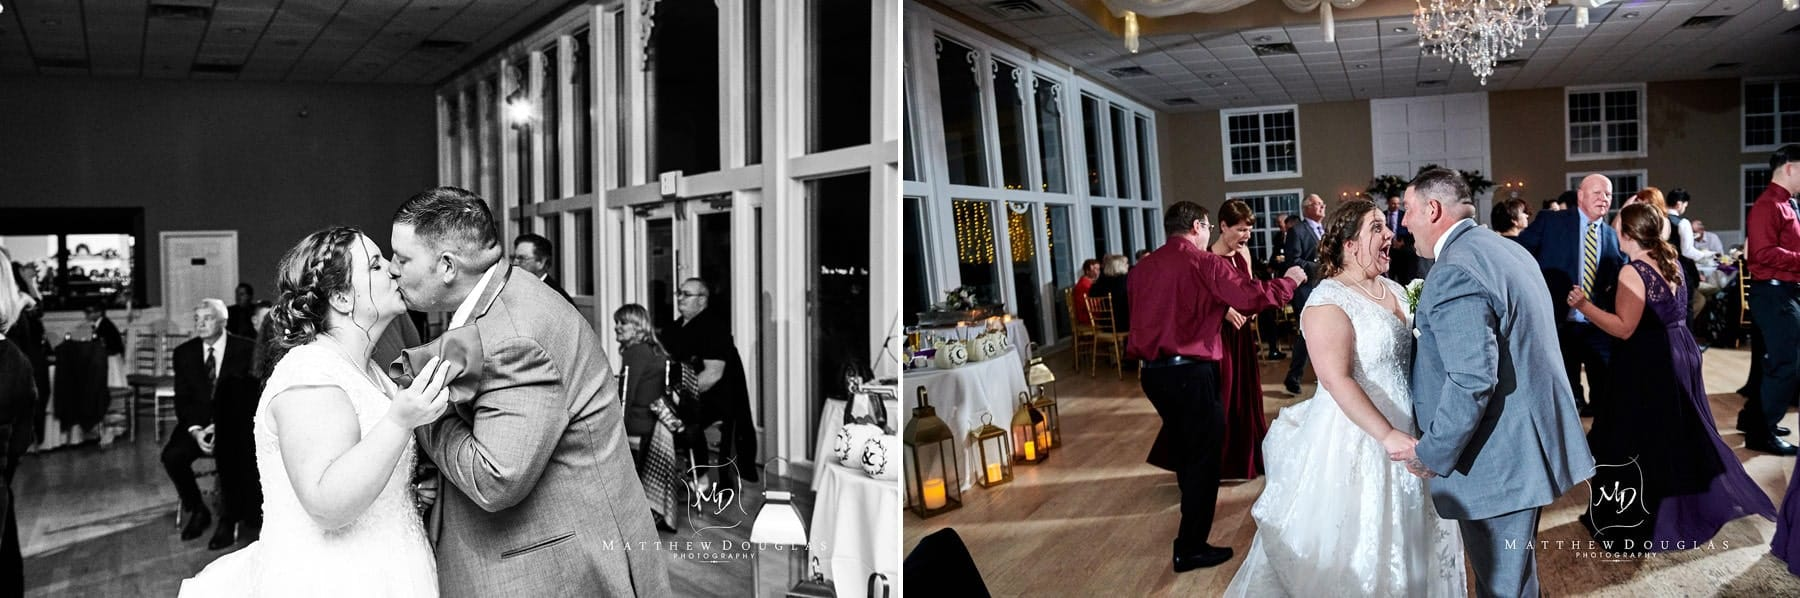 bride and groom dancing at Skyview Golf club